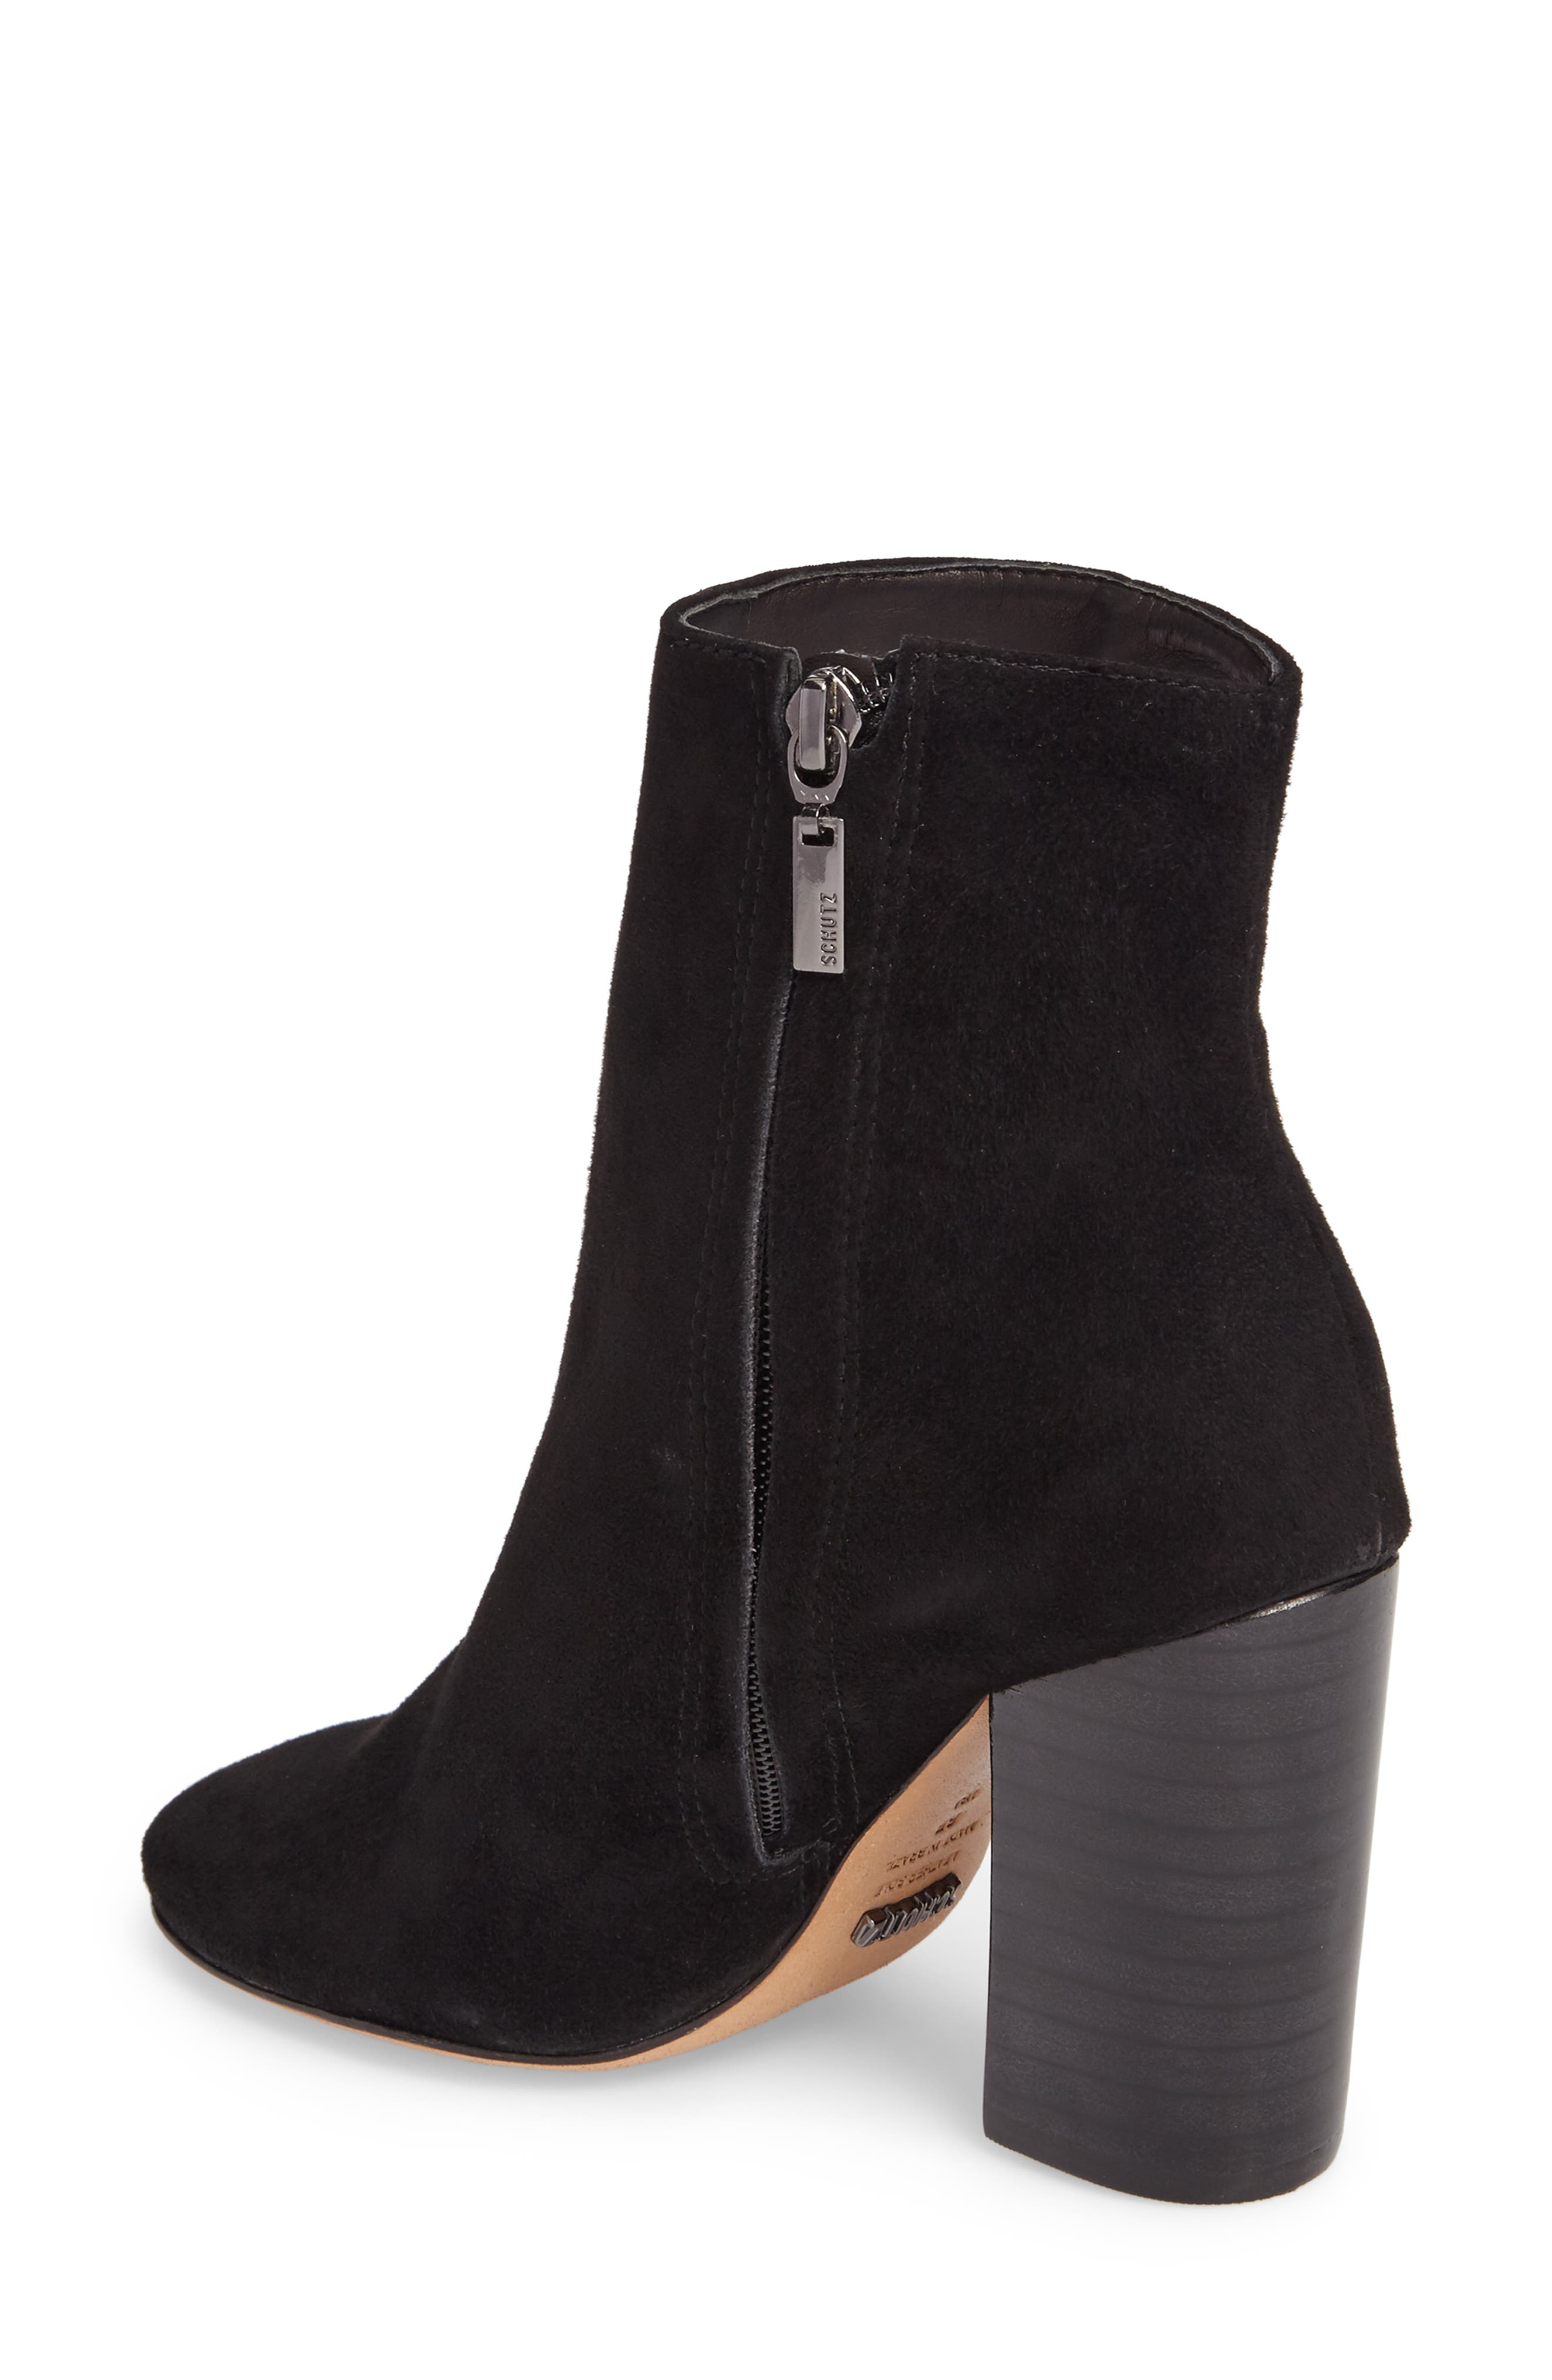 Ravan Block Heel Bootie,                             Alternate thumbnail 2, color,                             001